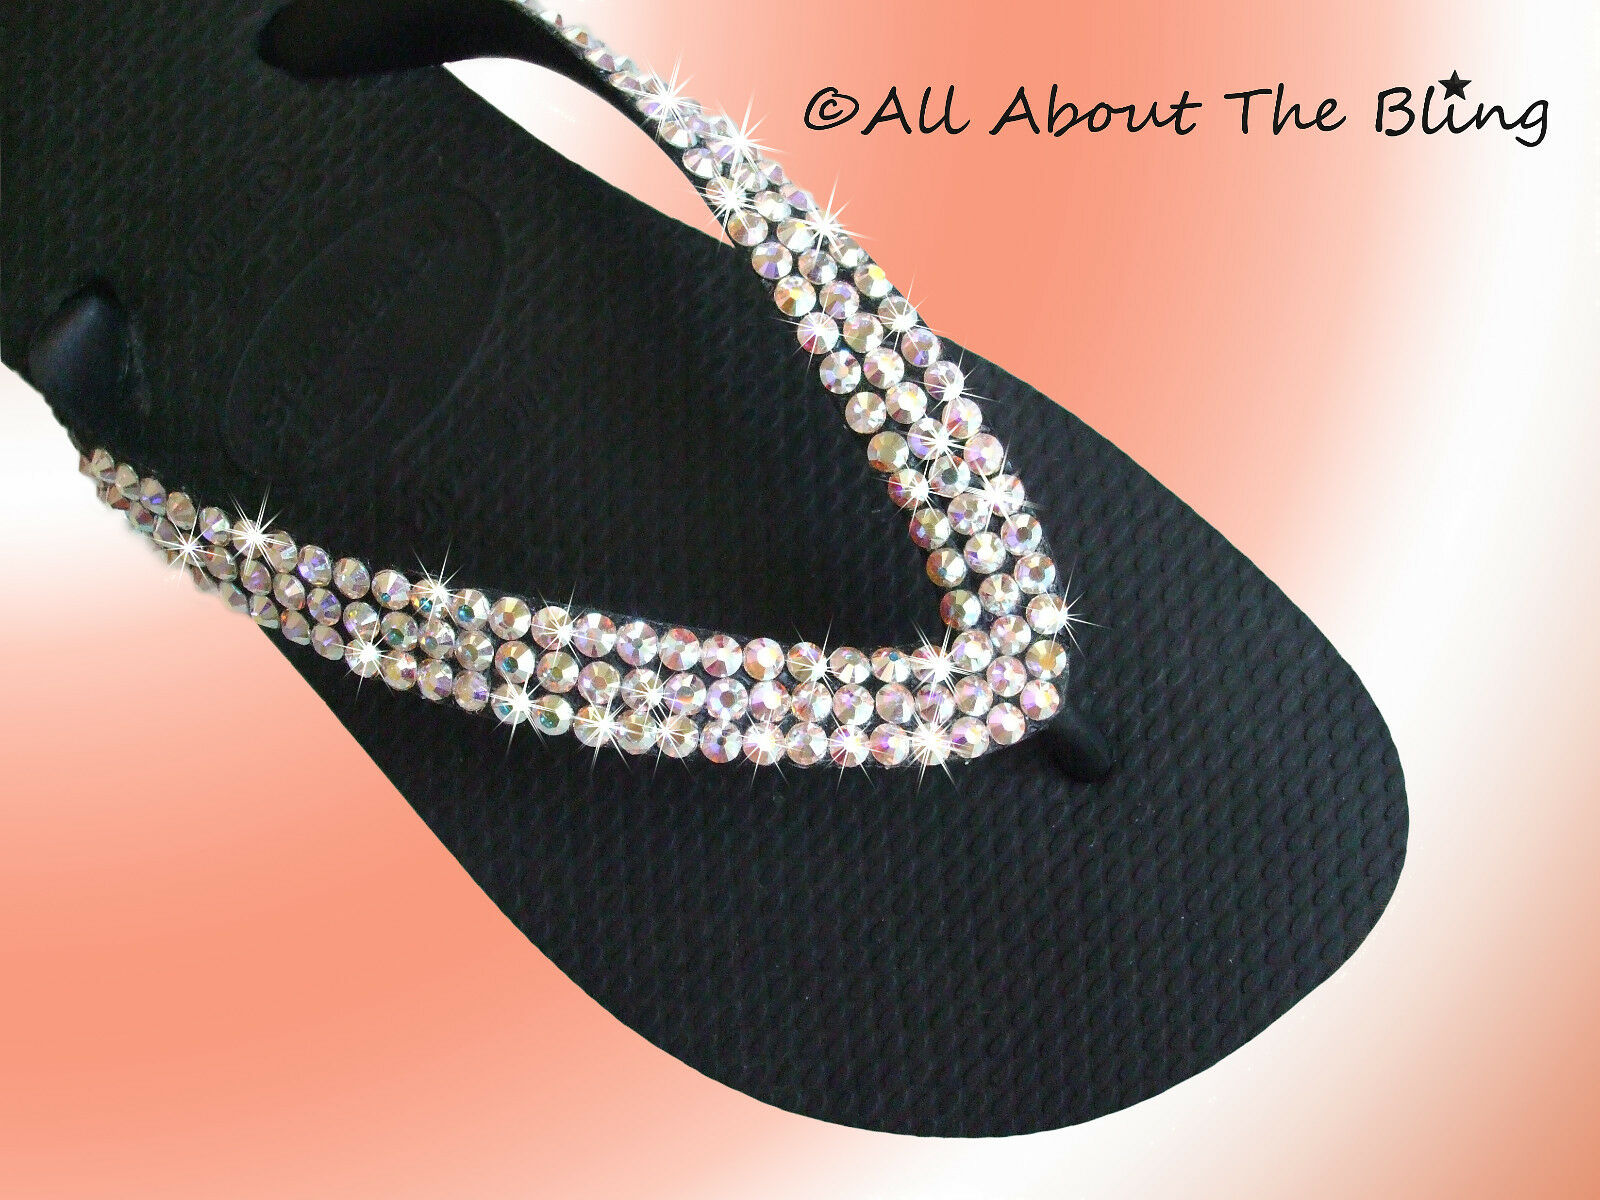 Havaianas flip flops or AB Cariris wedge with Swarovski Crystals AB or Iridescent d6221c